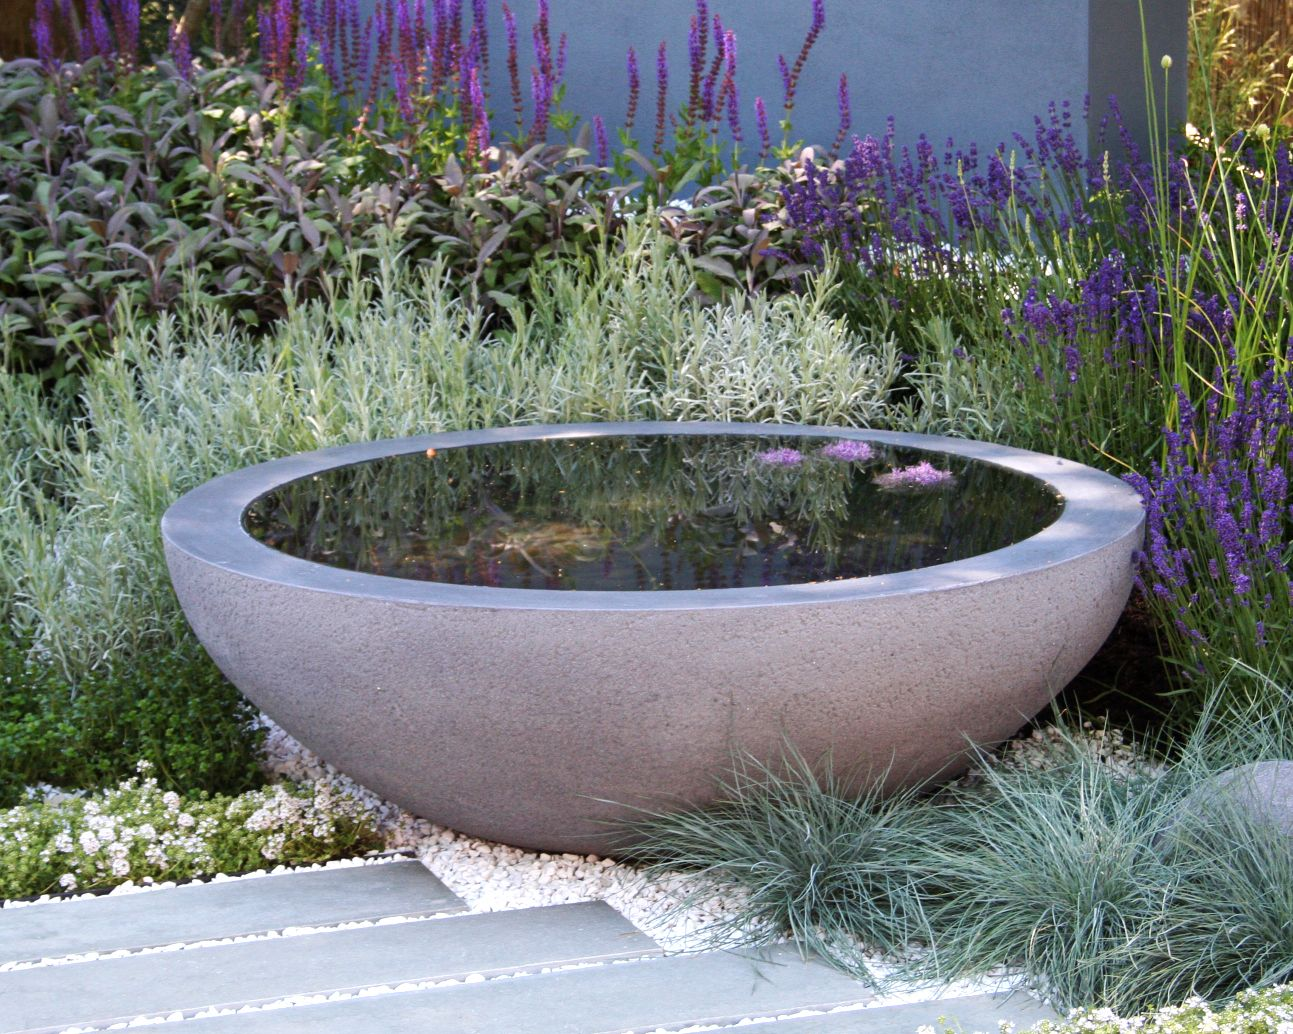 water feature pond bowl urbis